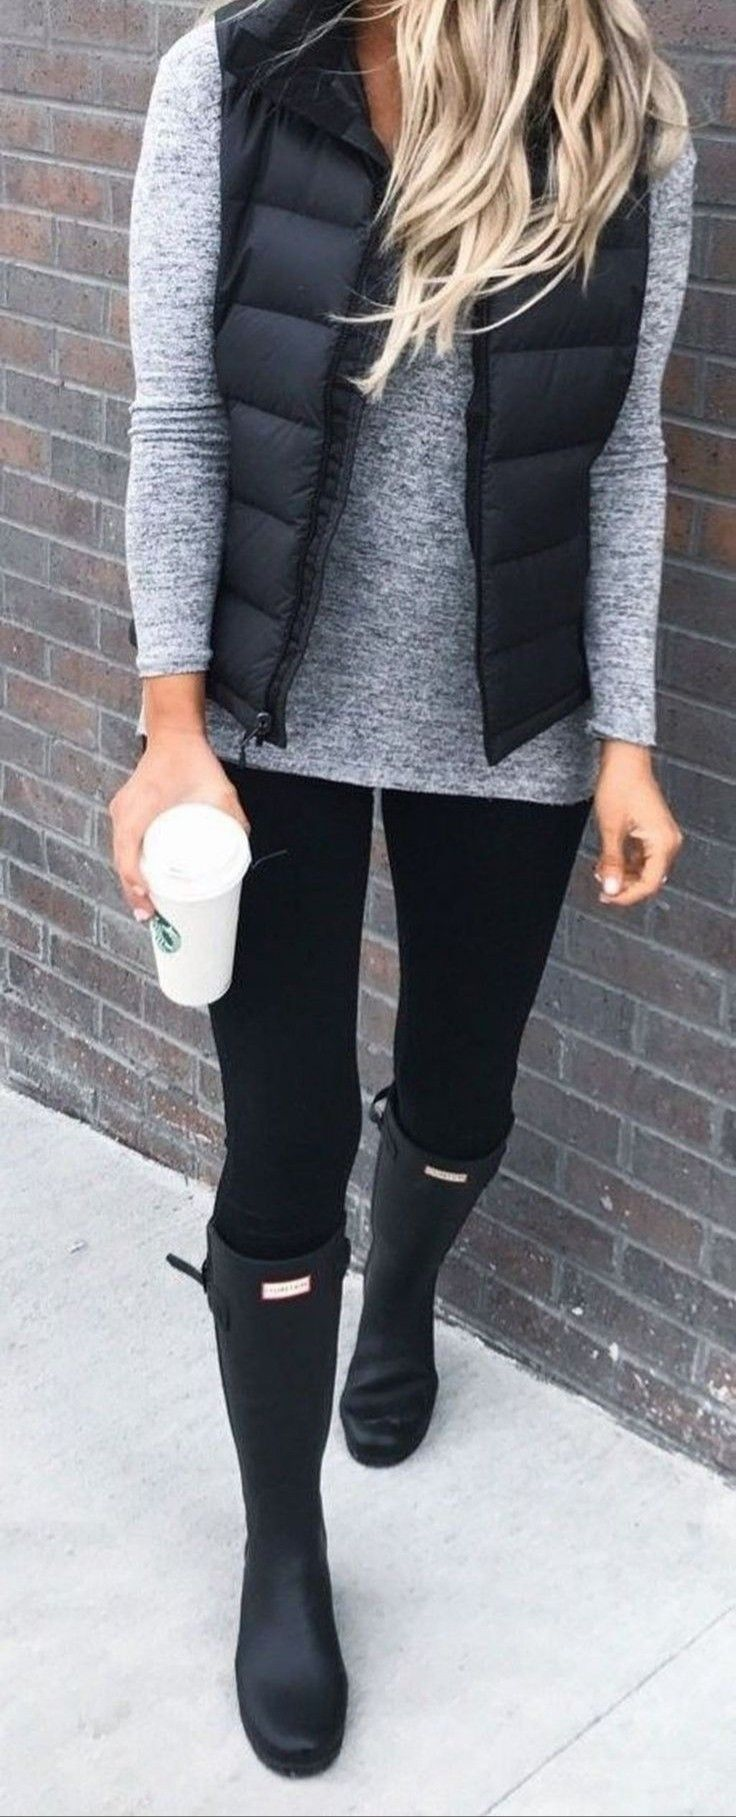 Cute neutral outfit with black Hunter boots.